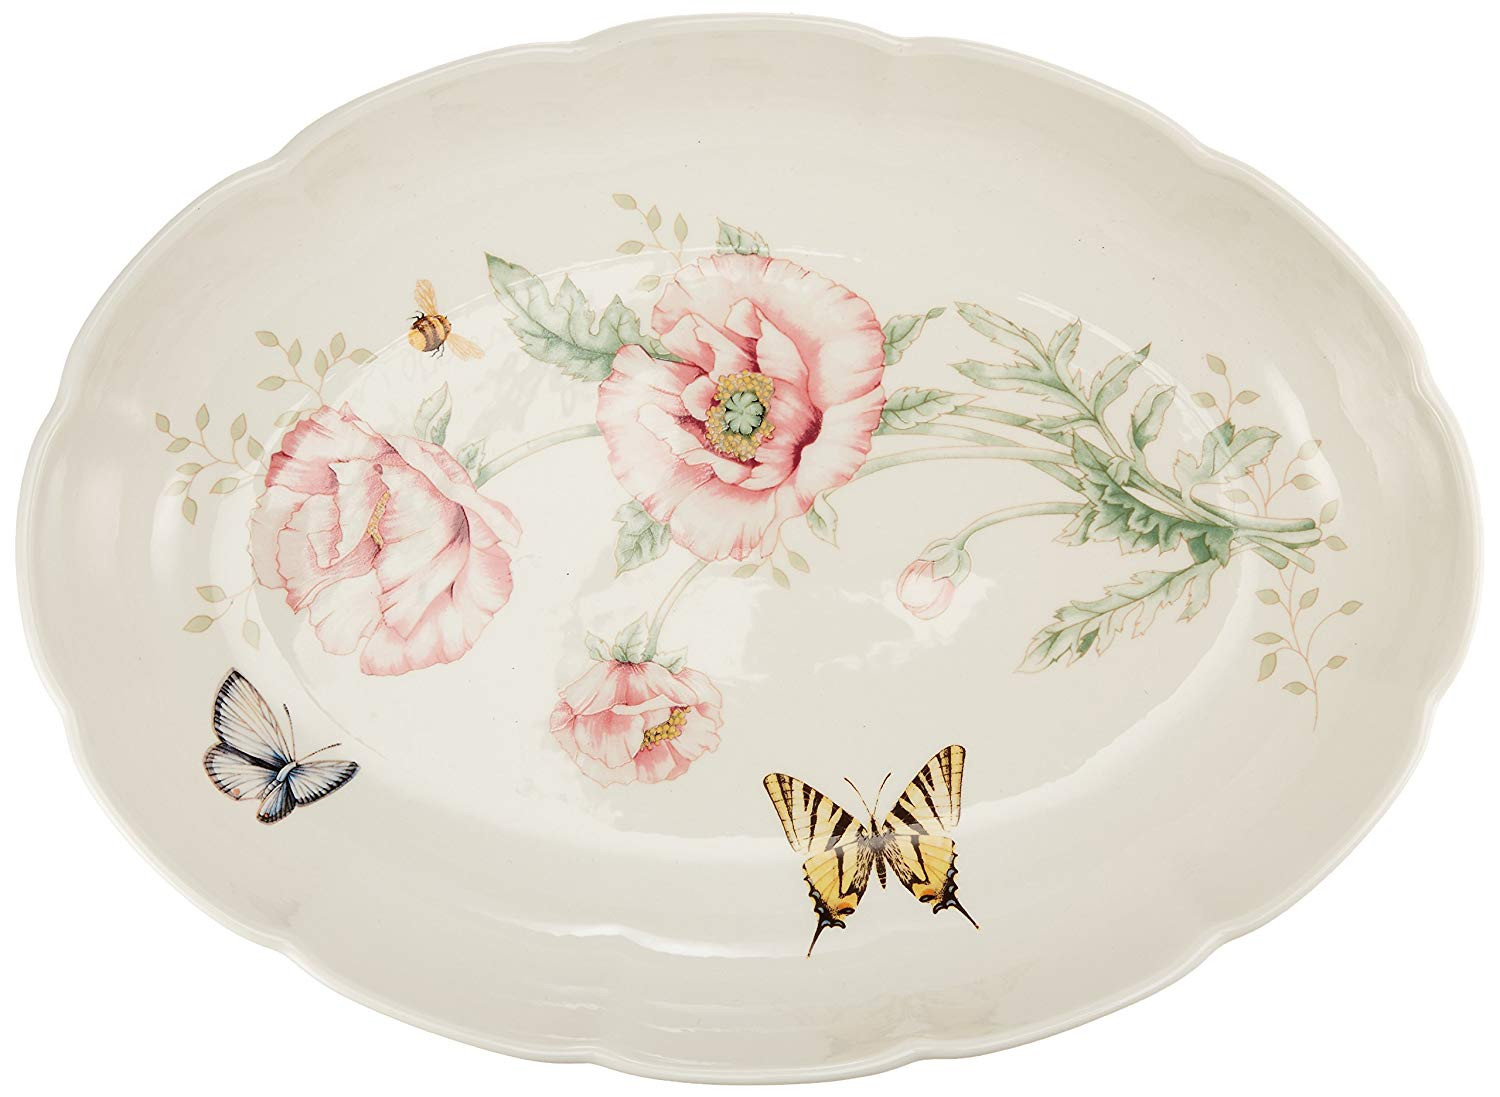 lenox fine crystal vase of amazon com lenox butterfly meadow scalloped oval baker casseroles regarding amazon com lenox butterfly meadow scalloped oval baker casseroles kitchen dining